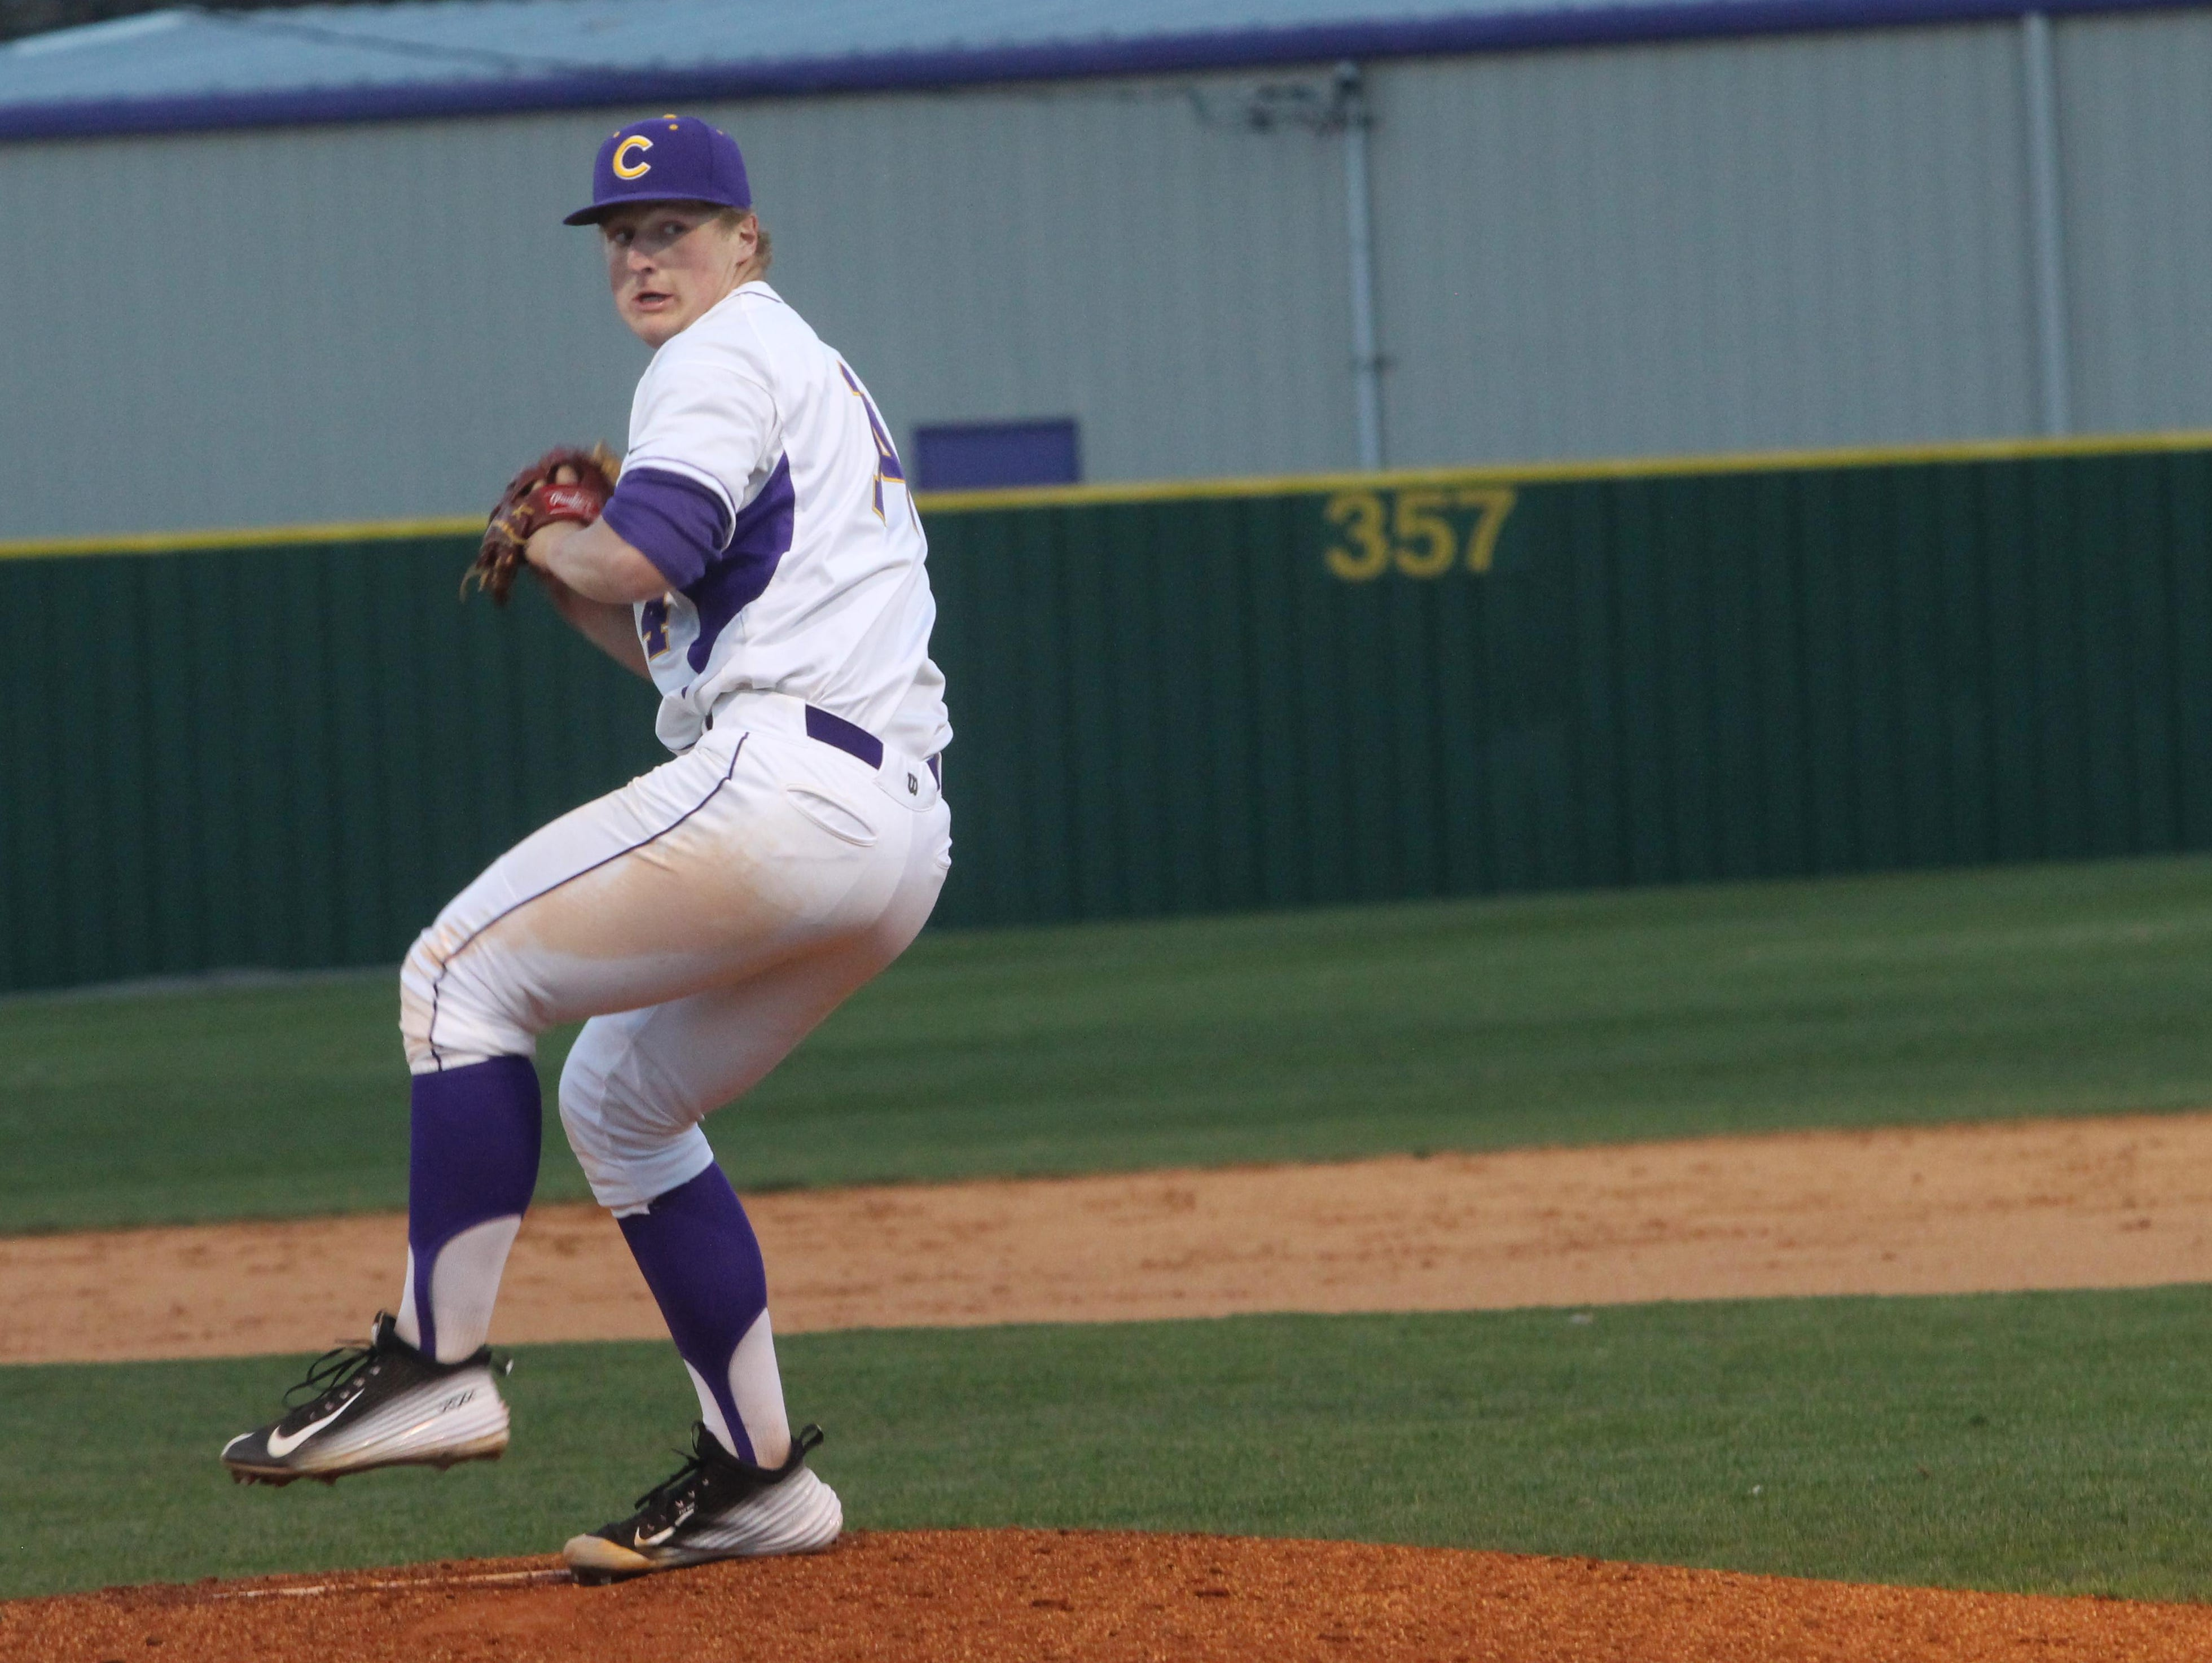 Clarksville's Donny Everett was Class AAA Mr. Baseball, was Gatorade Player of the Year in Tennessee and is The Tennessean 2015 player of the year.